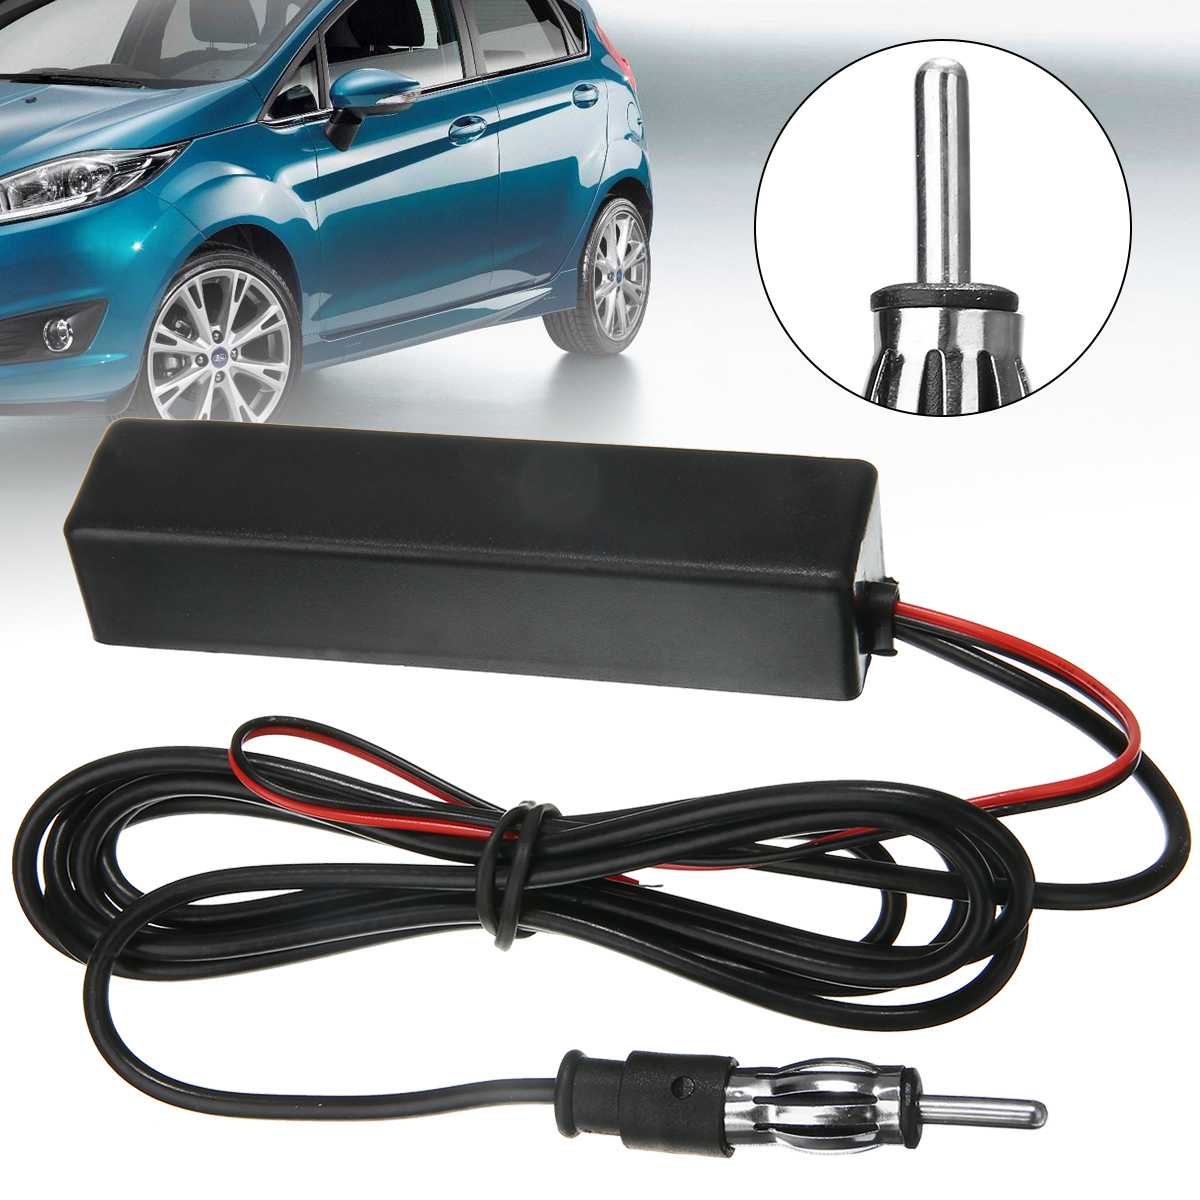 1pcs 12V Universal Hidden Amplified Antenna Car Electronic Stereo AM FM Radio Hidden Amplified Antenna Aerial